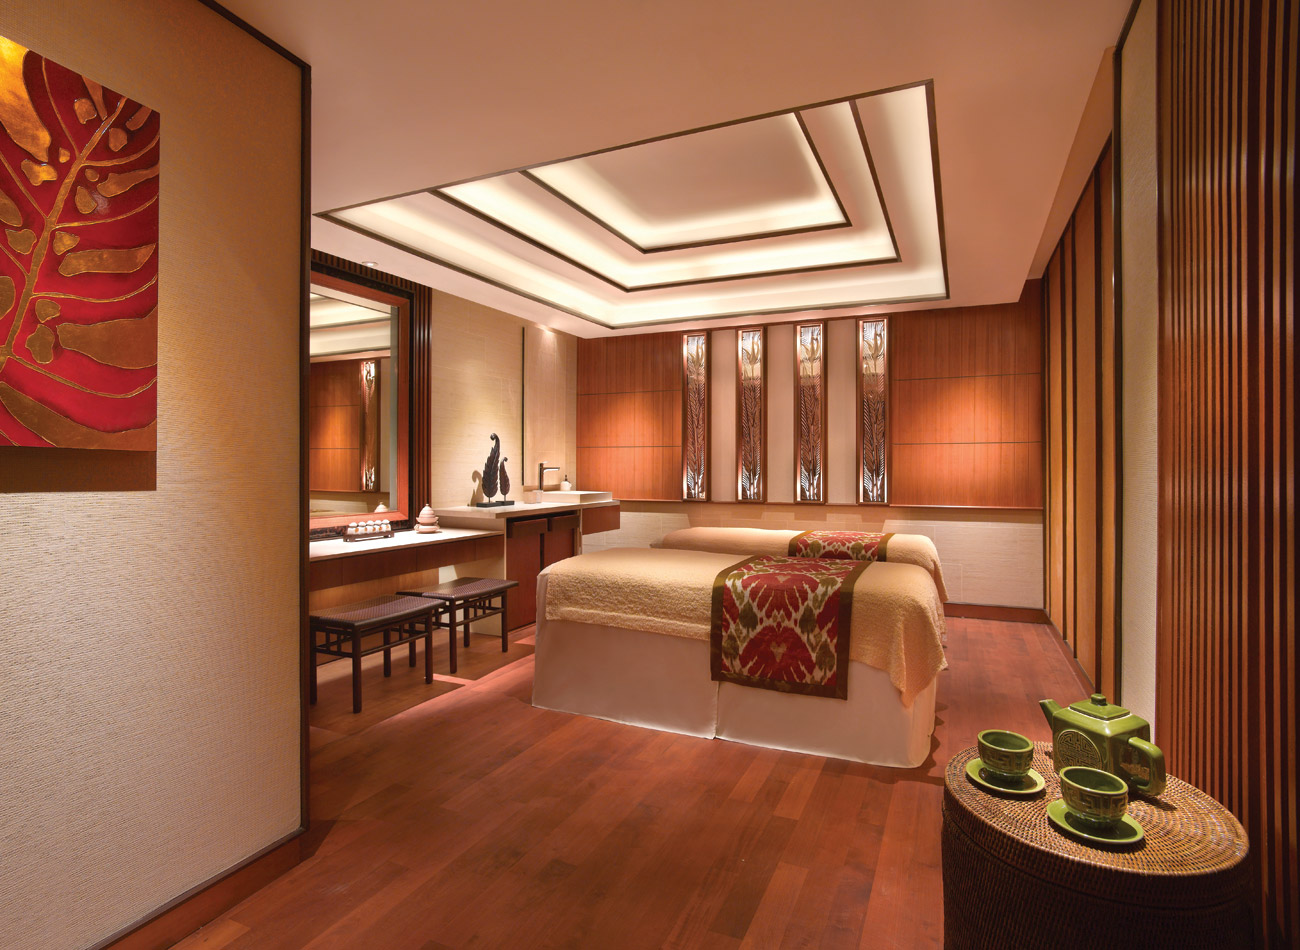 SLS-Gallery-CHI-The-Spa-Couple-Treatment-Room - Singapore.jpg